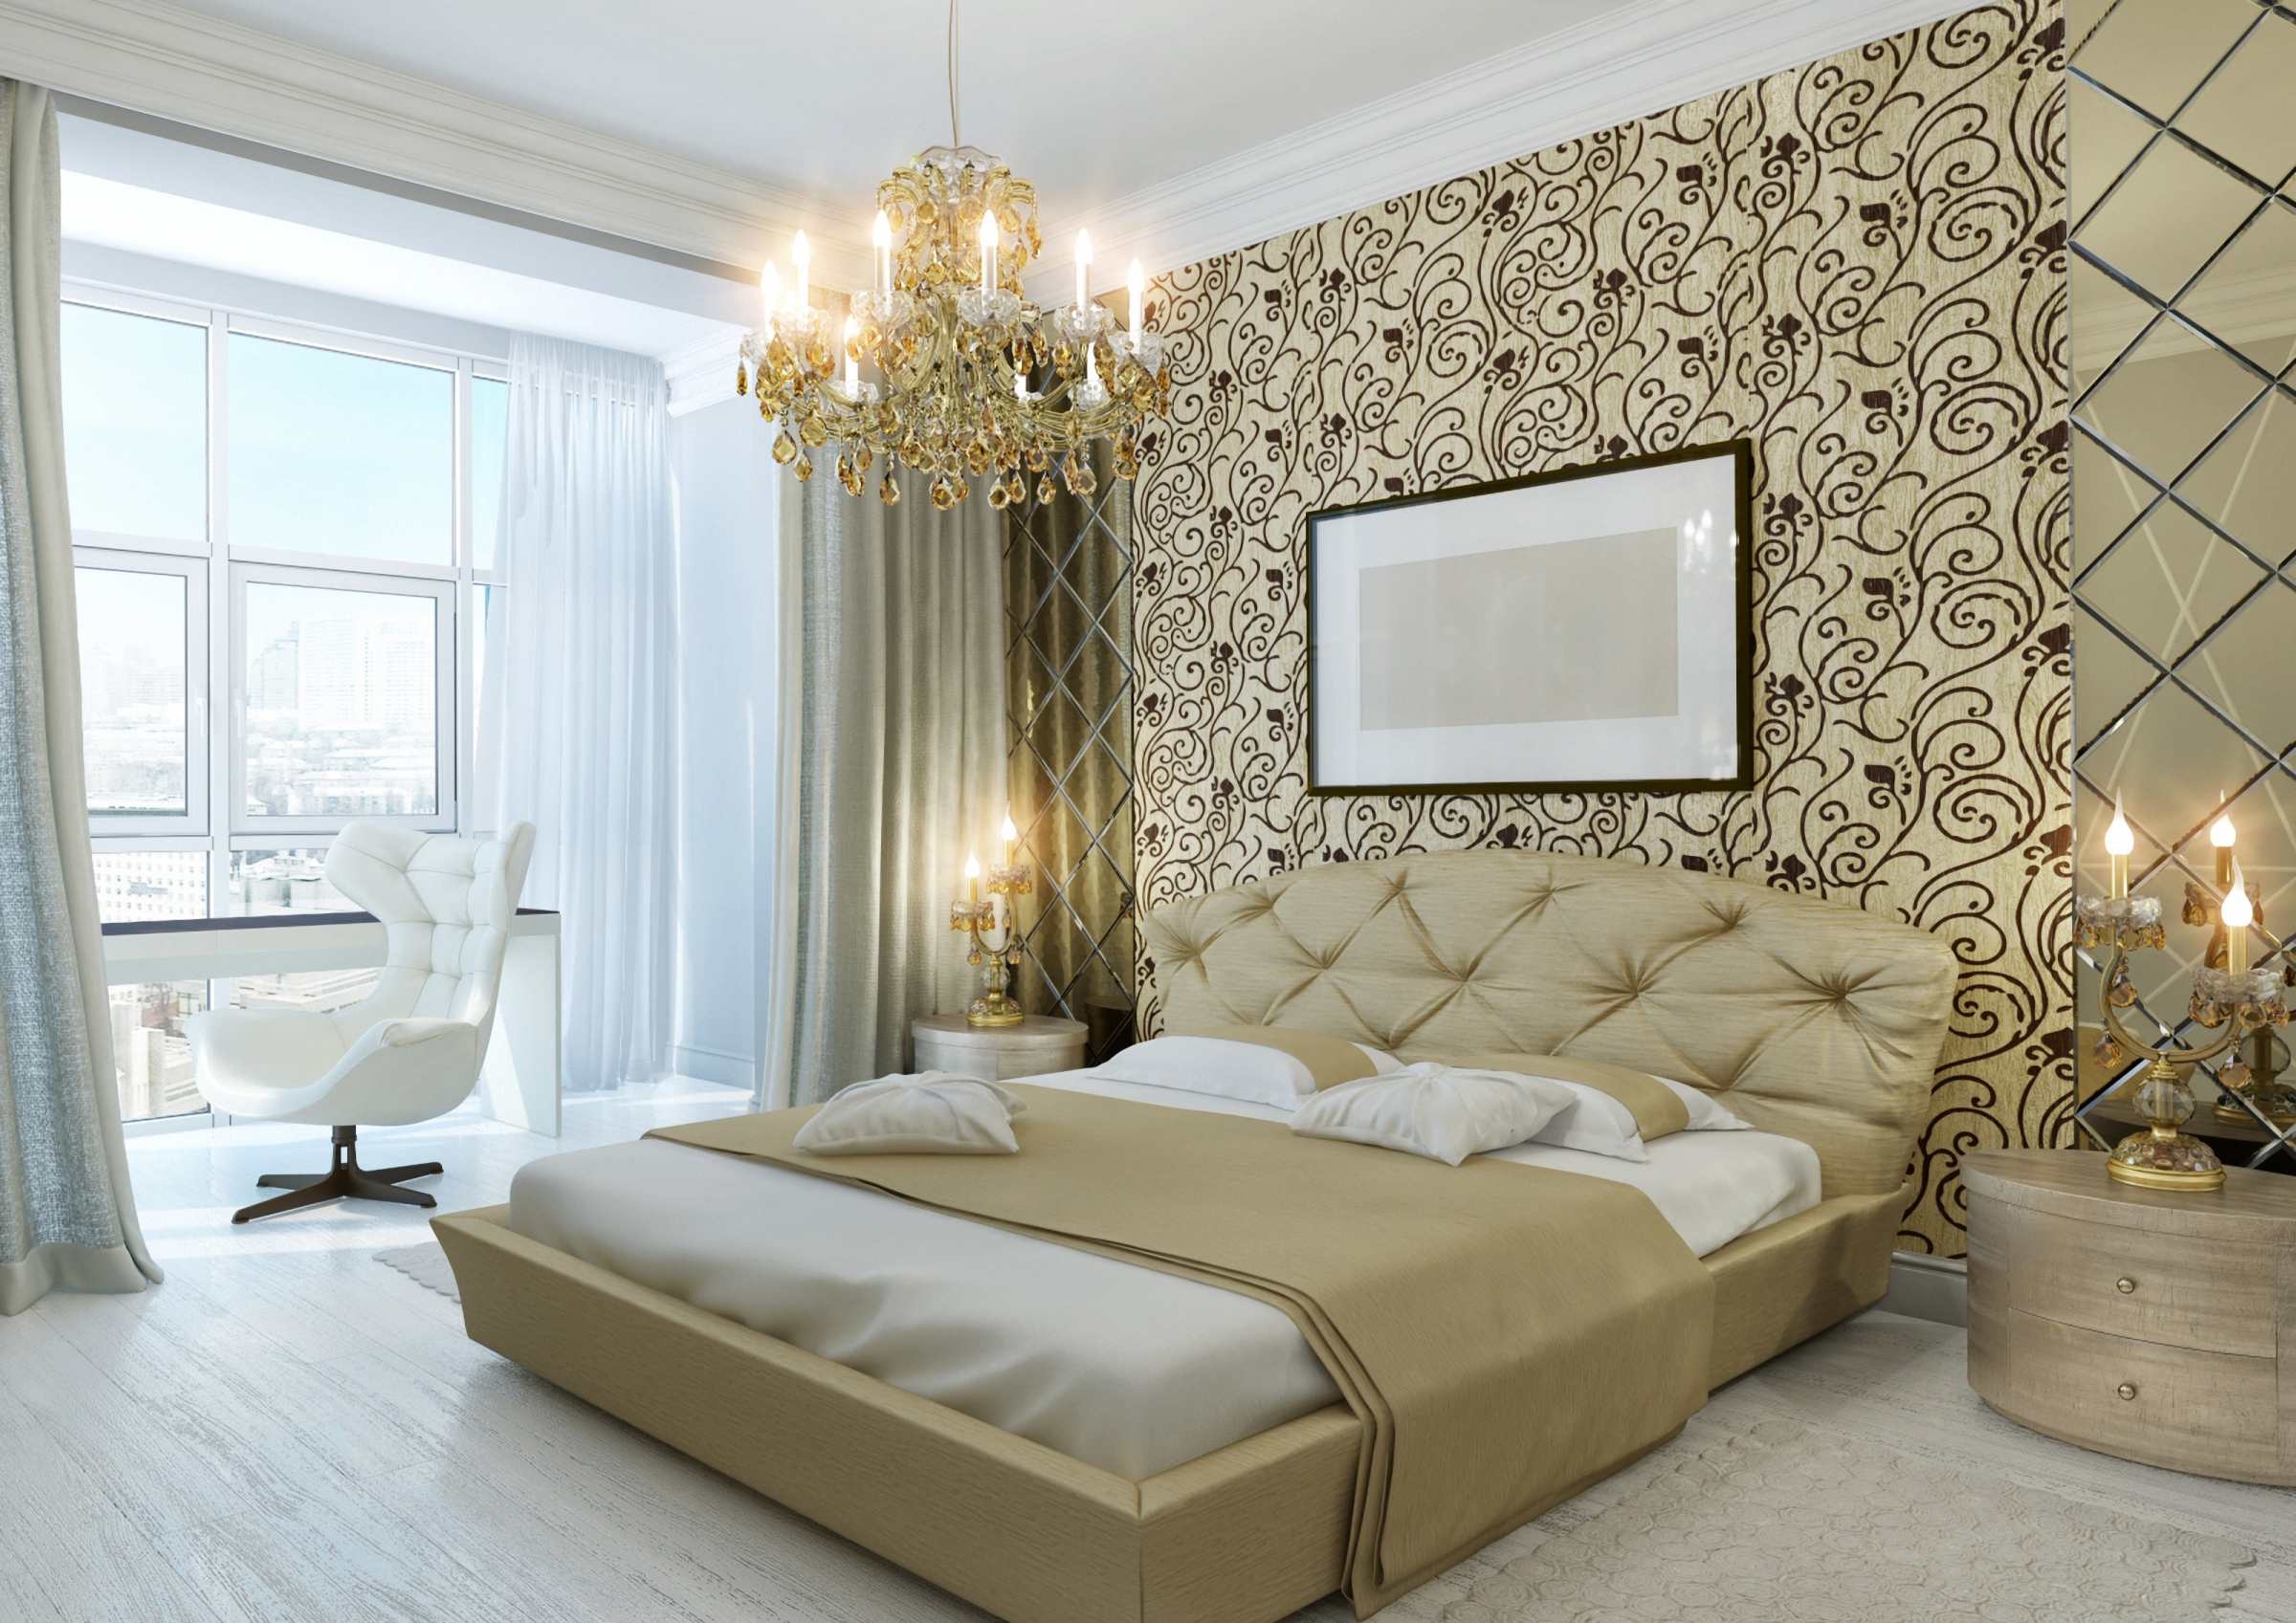 New Years Resolution Get A One Day Interior Redesign Apartment Makeover In Miami York Or Dubai